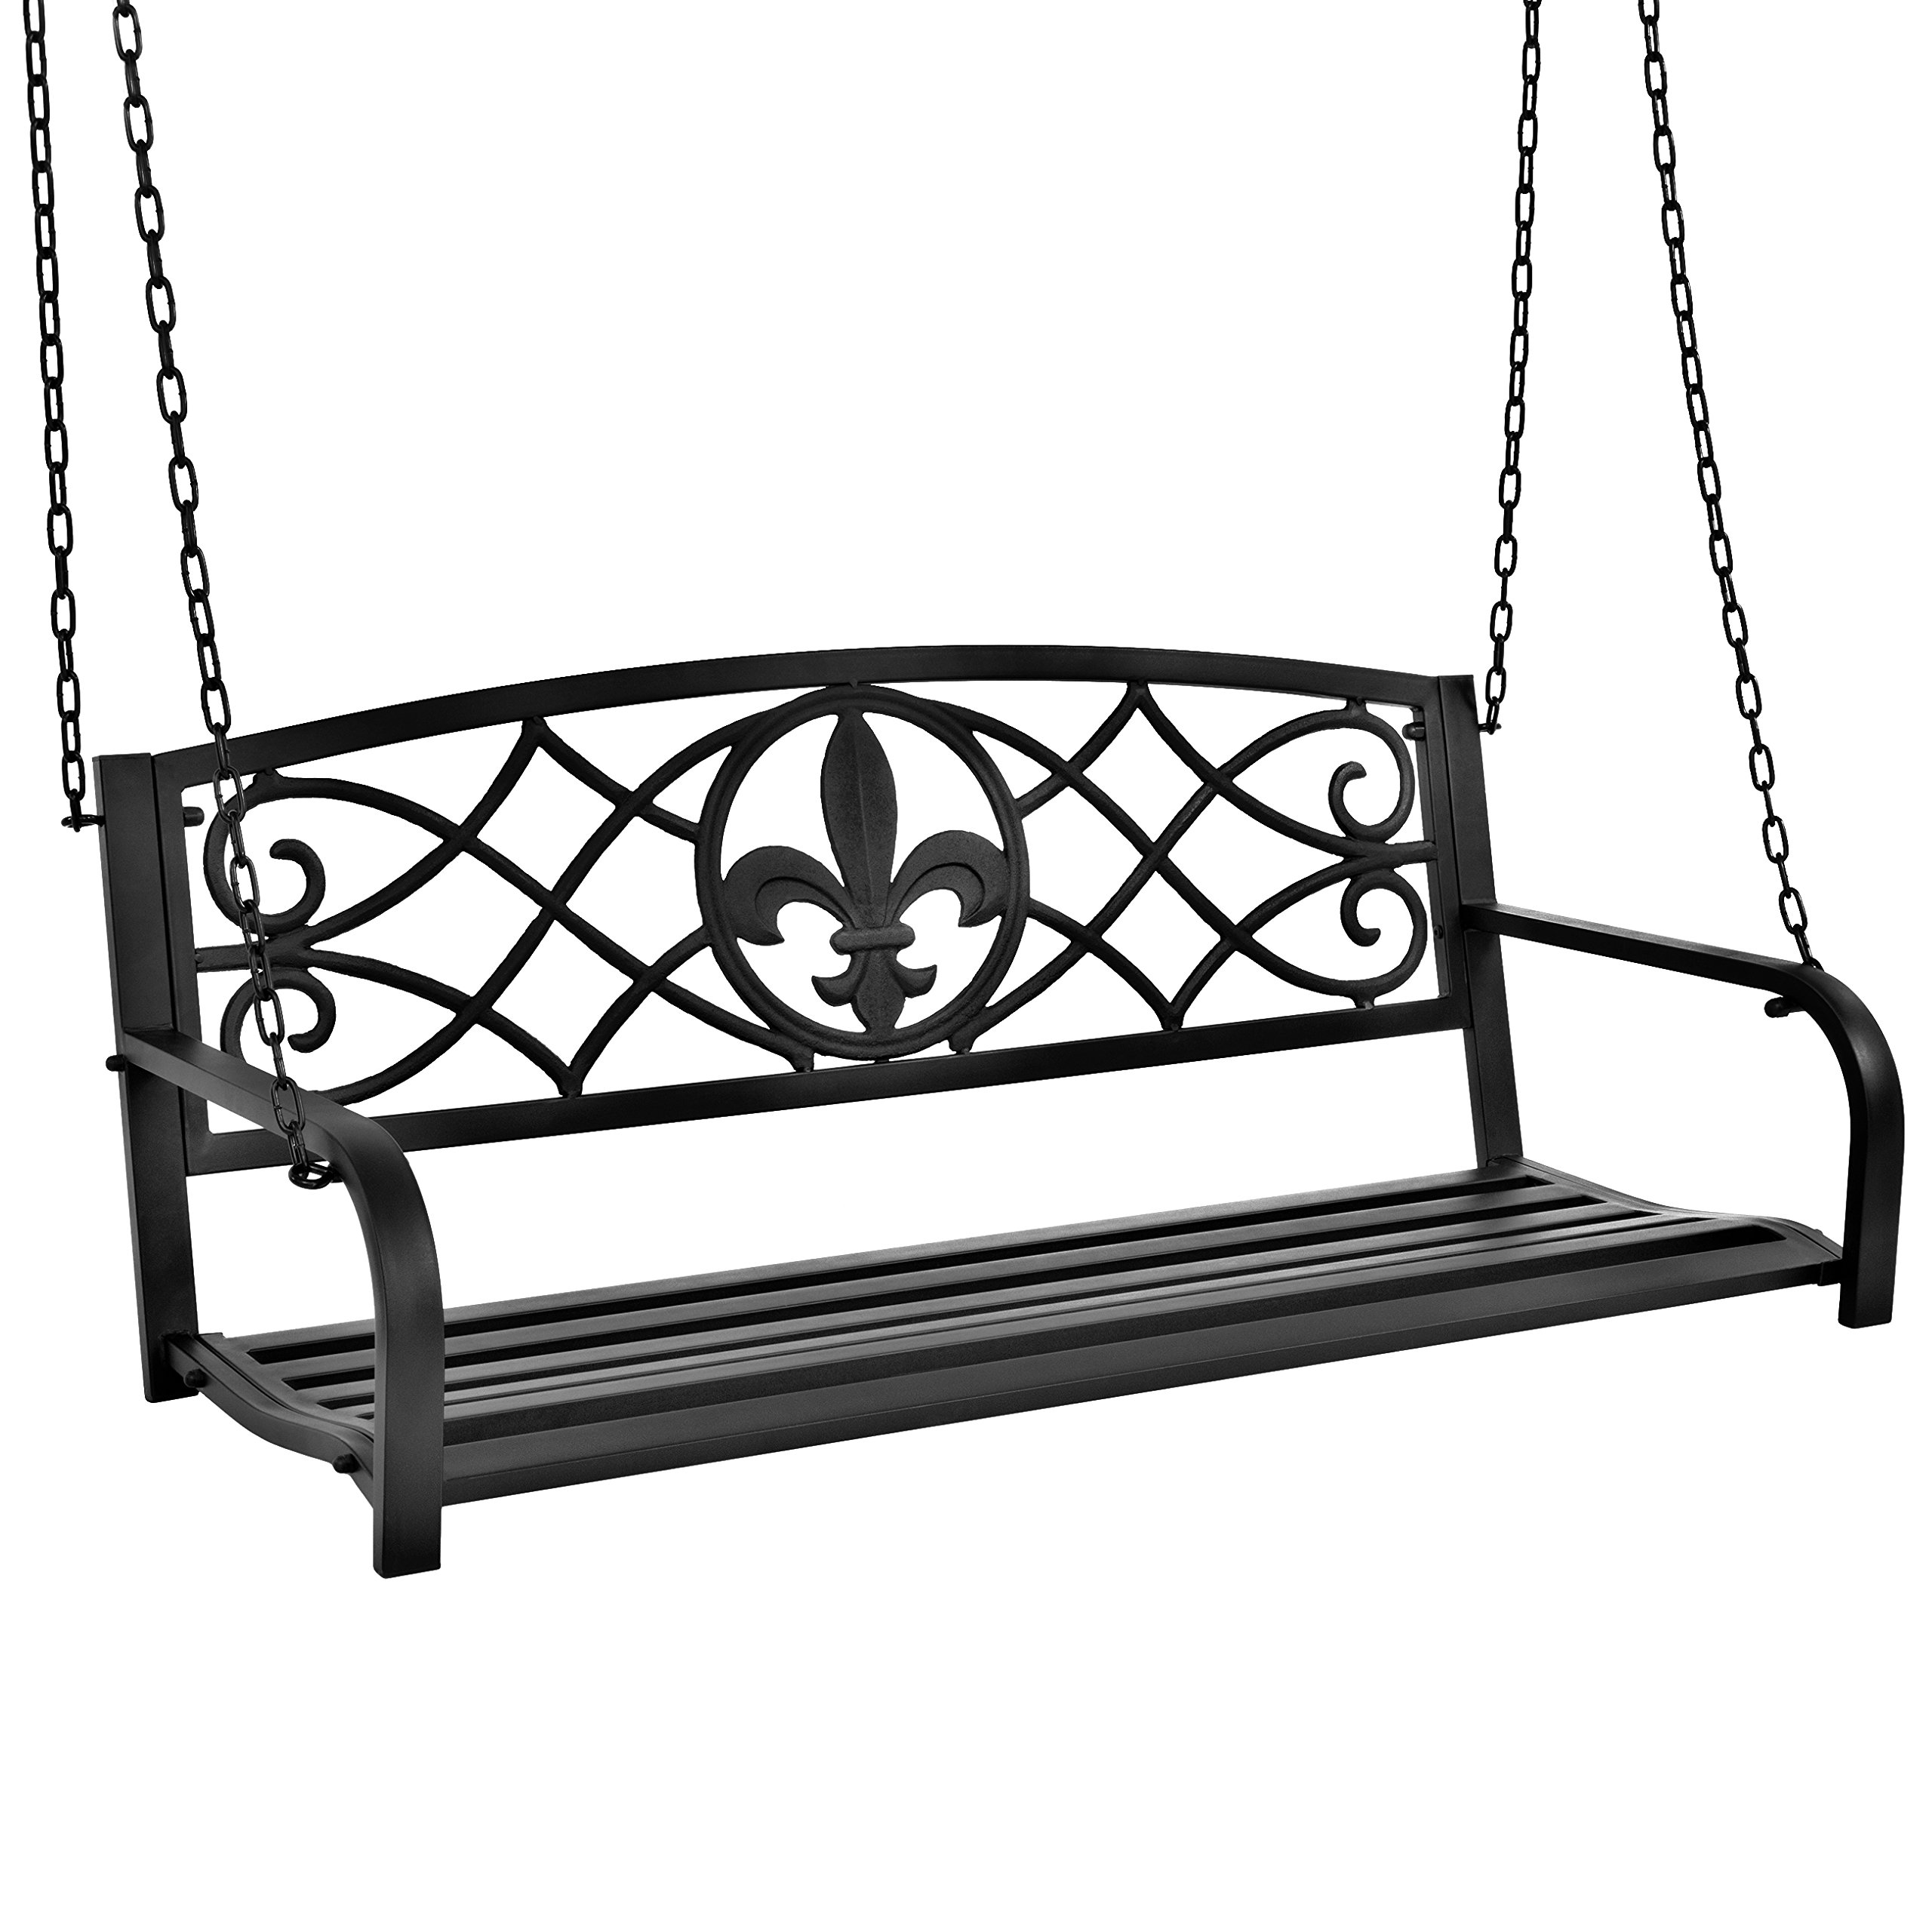 2560x2560 Bench Drawing Porch For Free Download